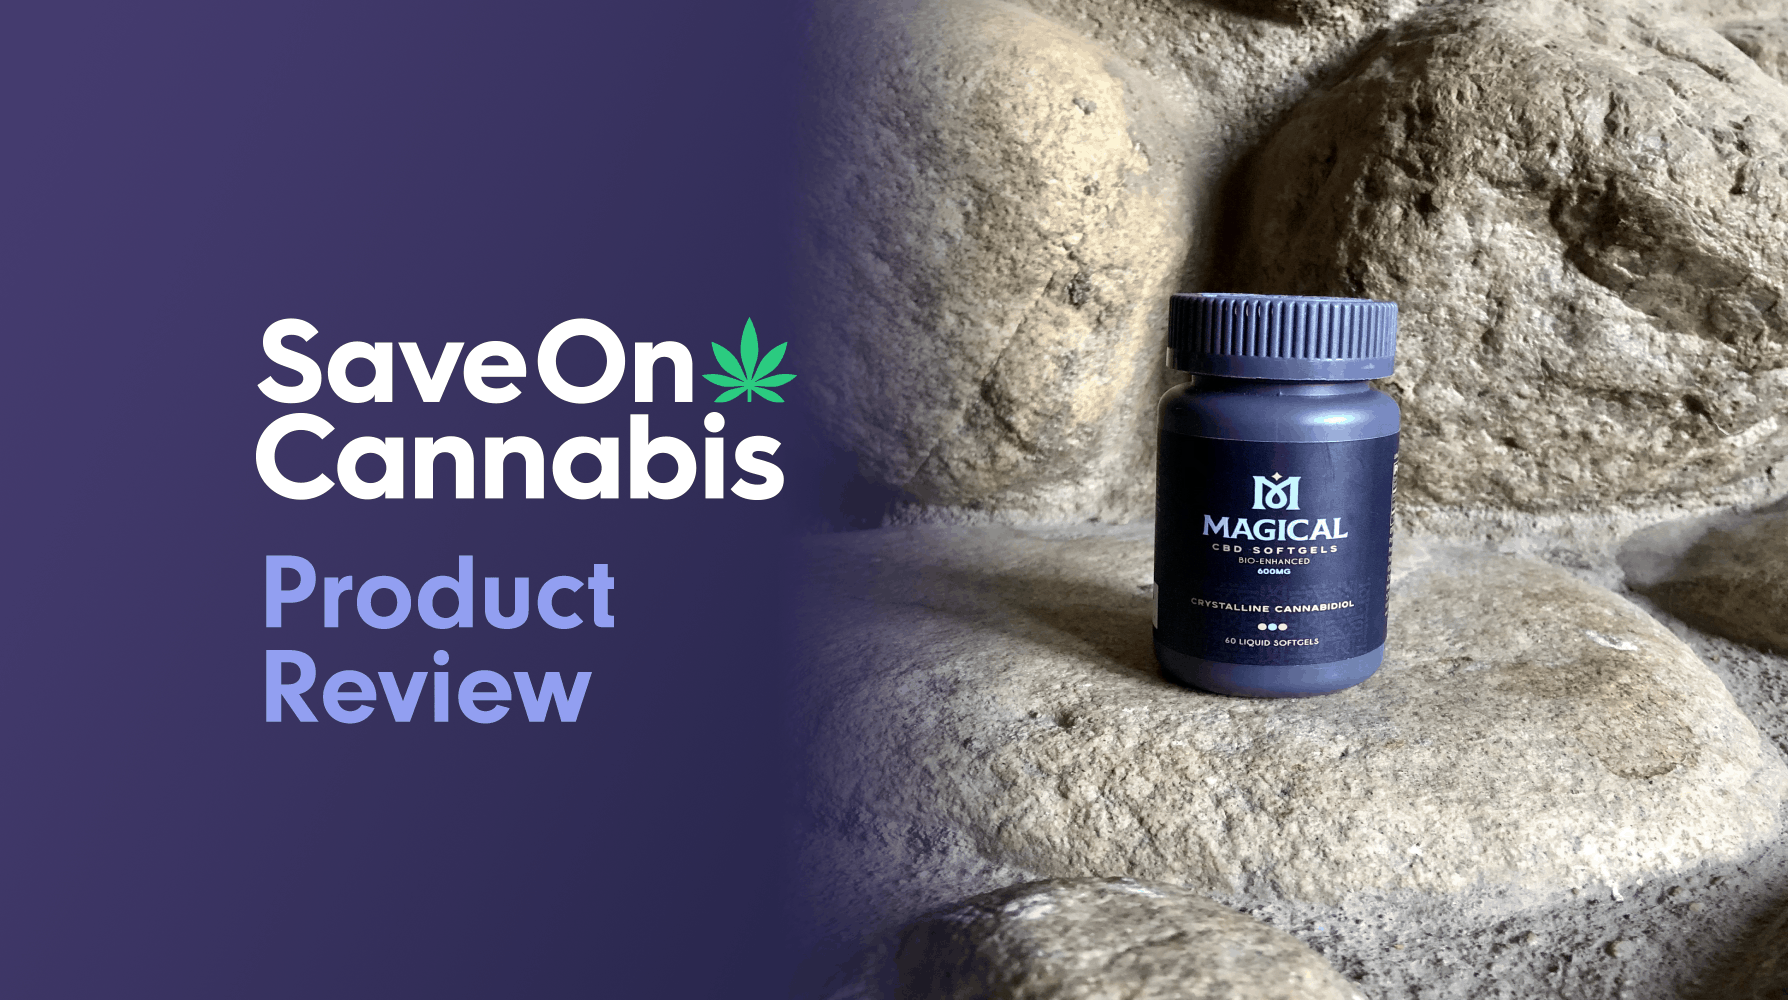 Magical CBD Softgels 600mg Save On Cannabis Review Website